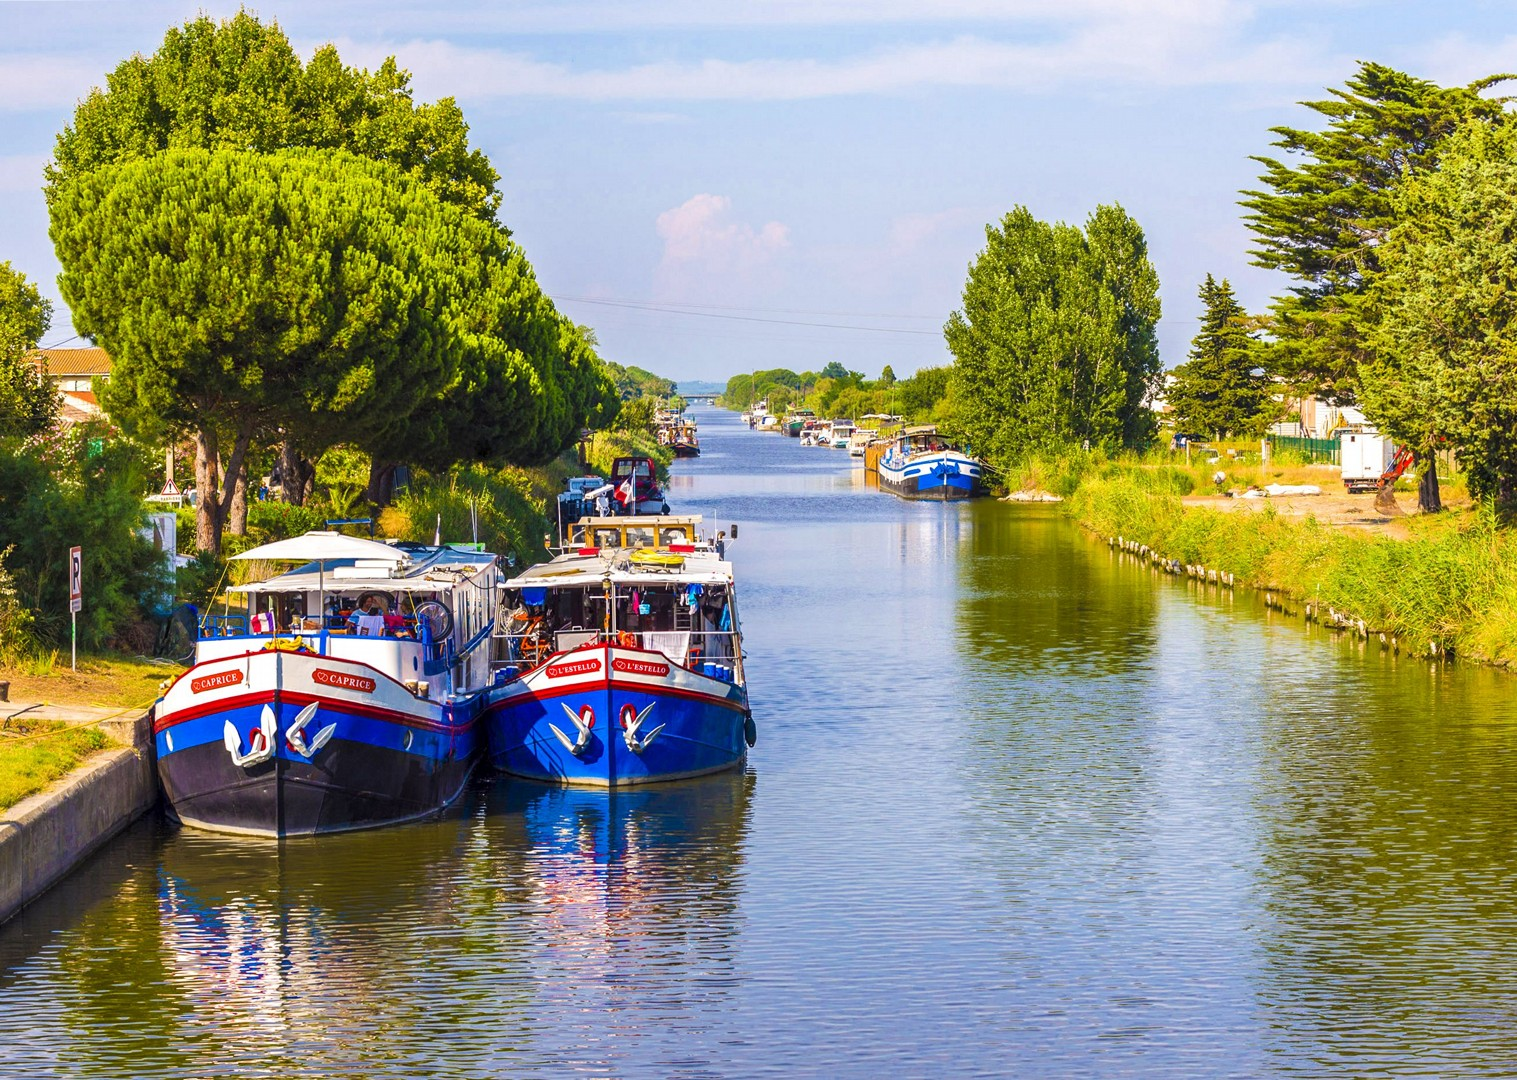 provence-avignon-bike-to-aigues-mortes-and-boat-cycling-tour.jpg - France - Provence - Avignon to Aigues-Mortes - Bike and Barge Holiday - Leisure Cycling